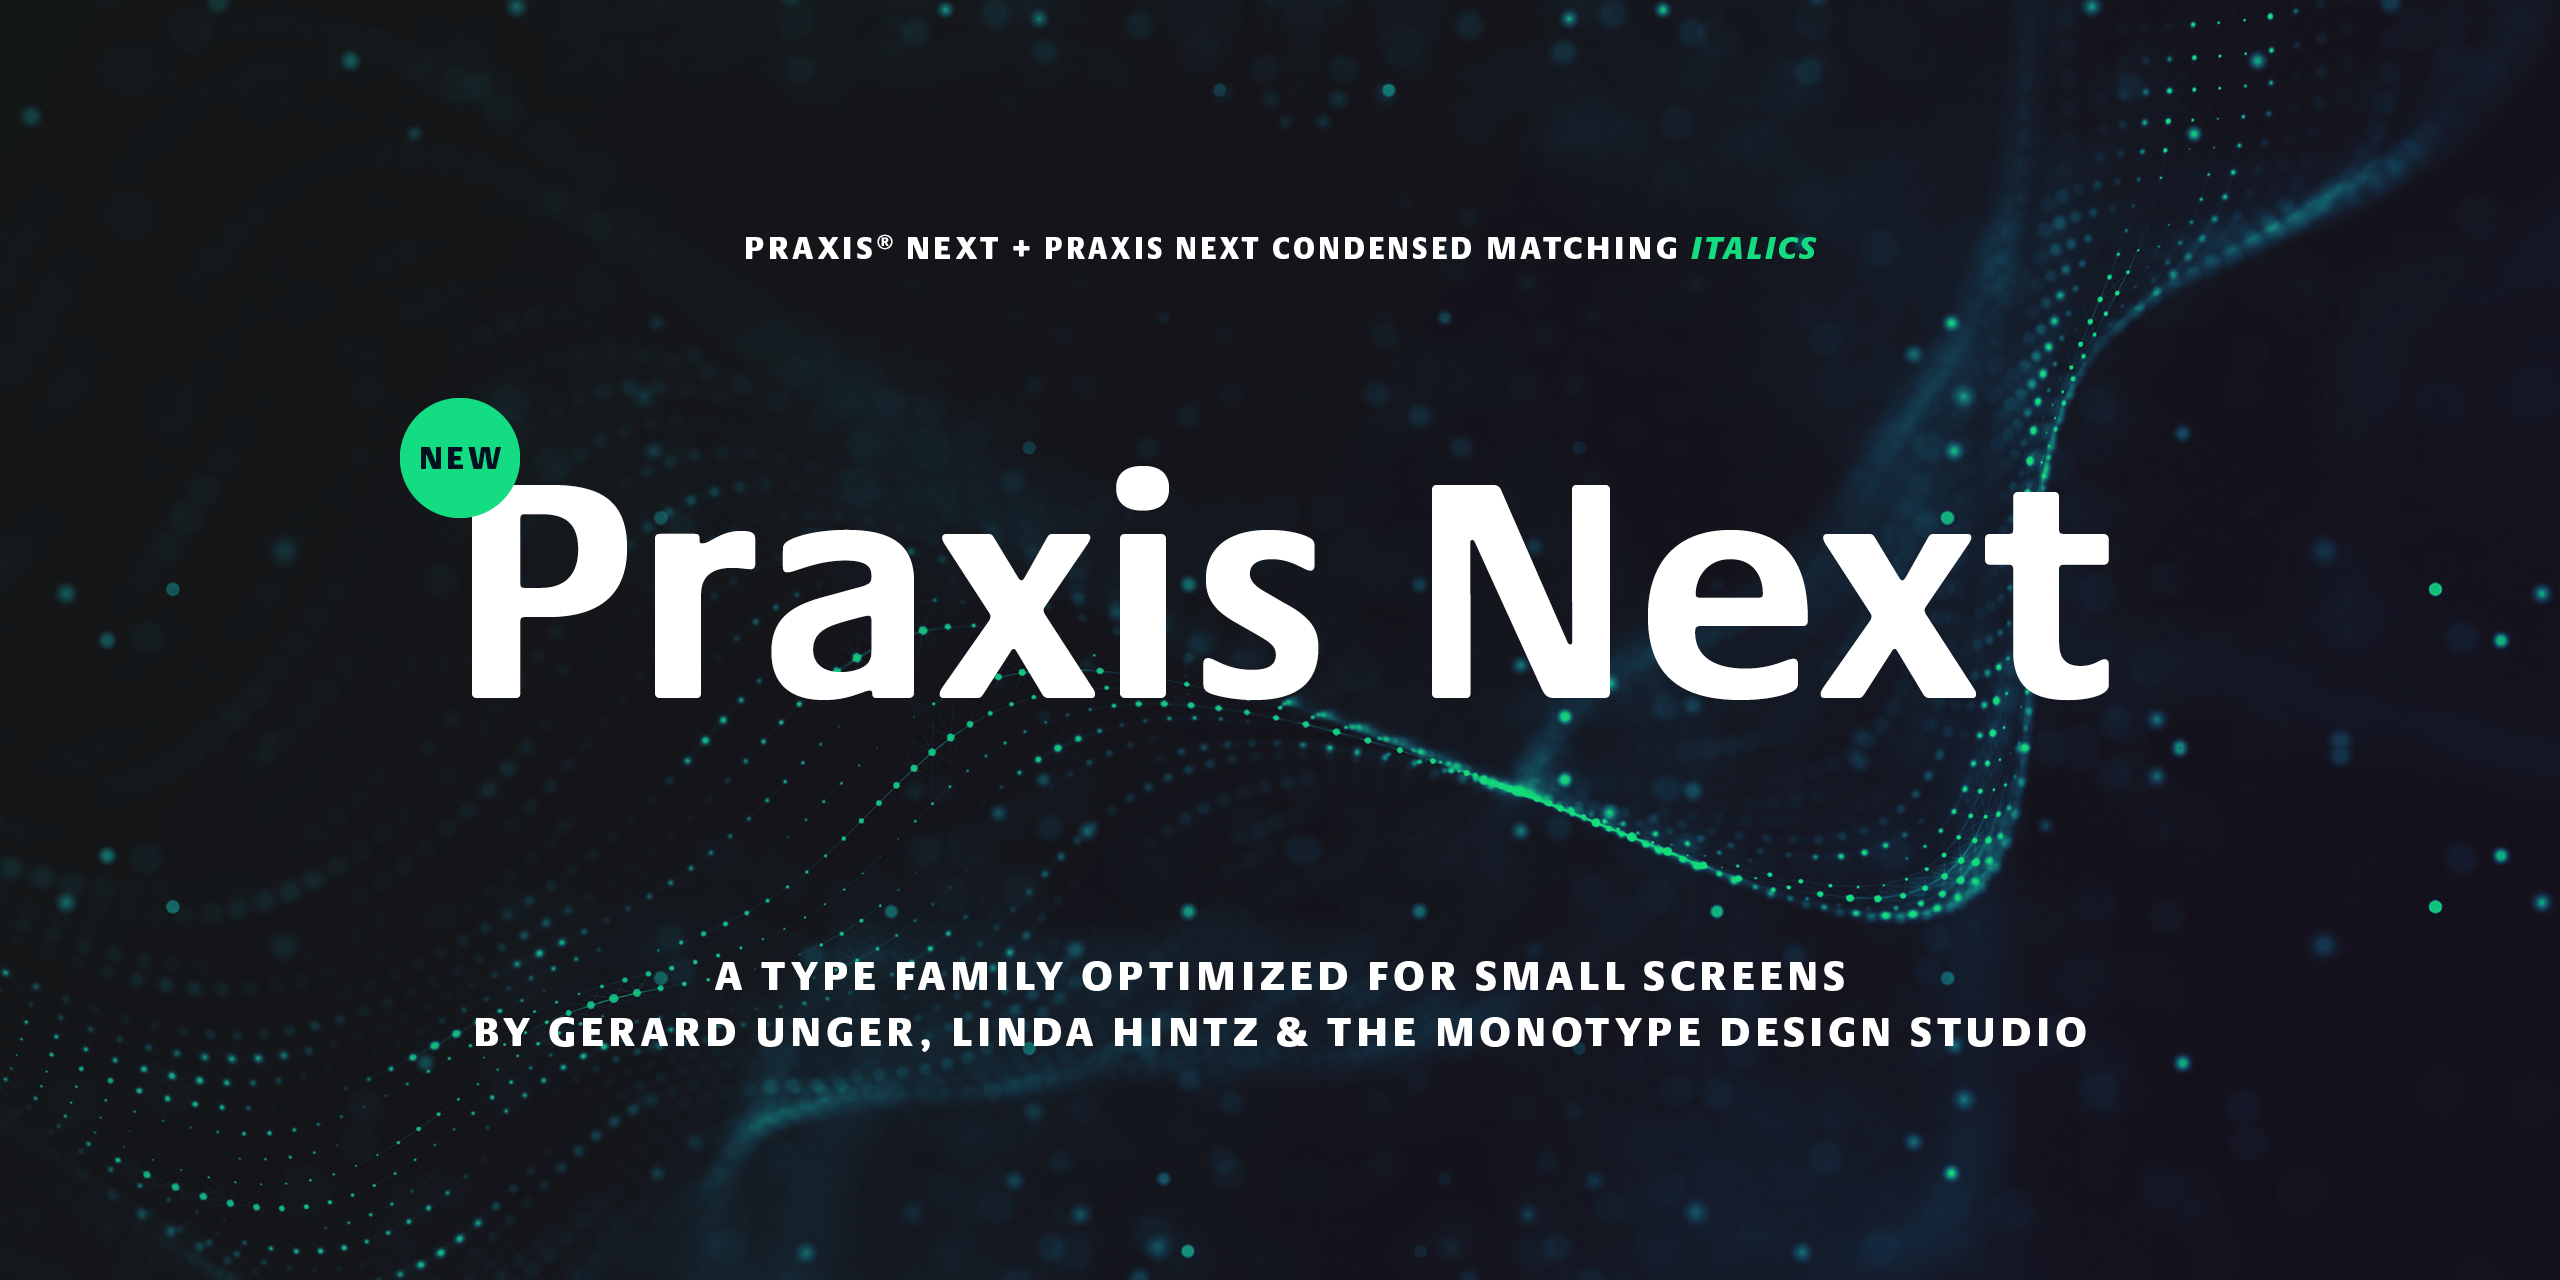 Showing for Praxis Next